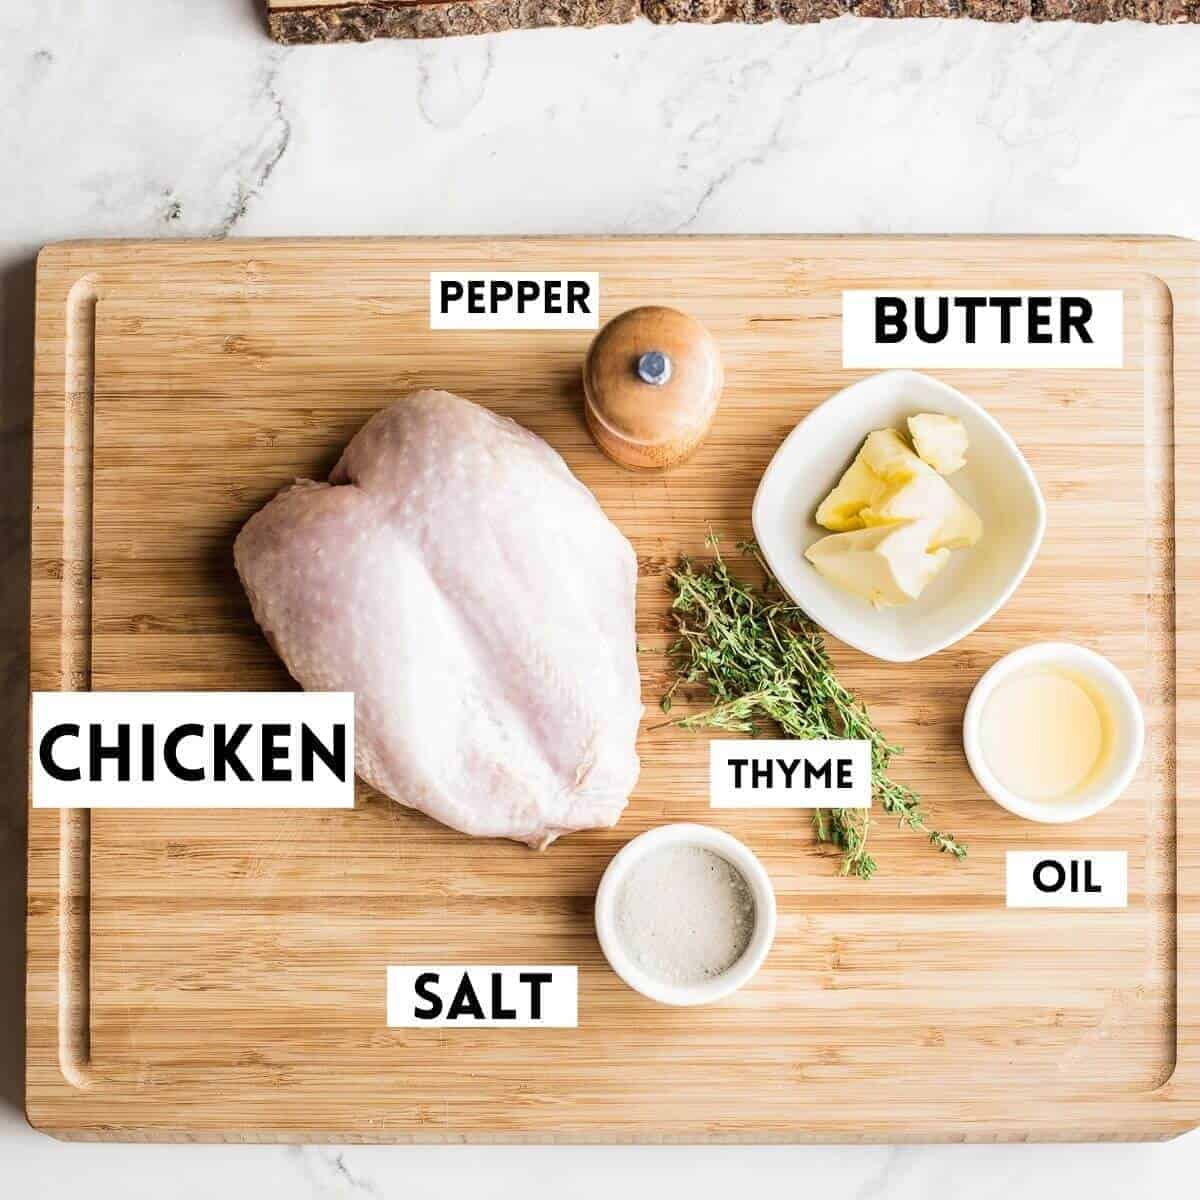 Ingredients needed to cook chicken